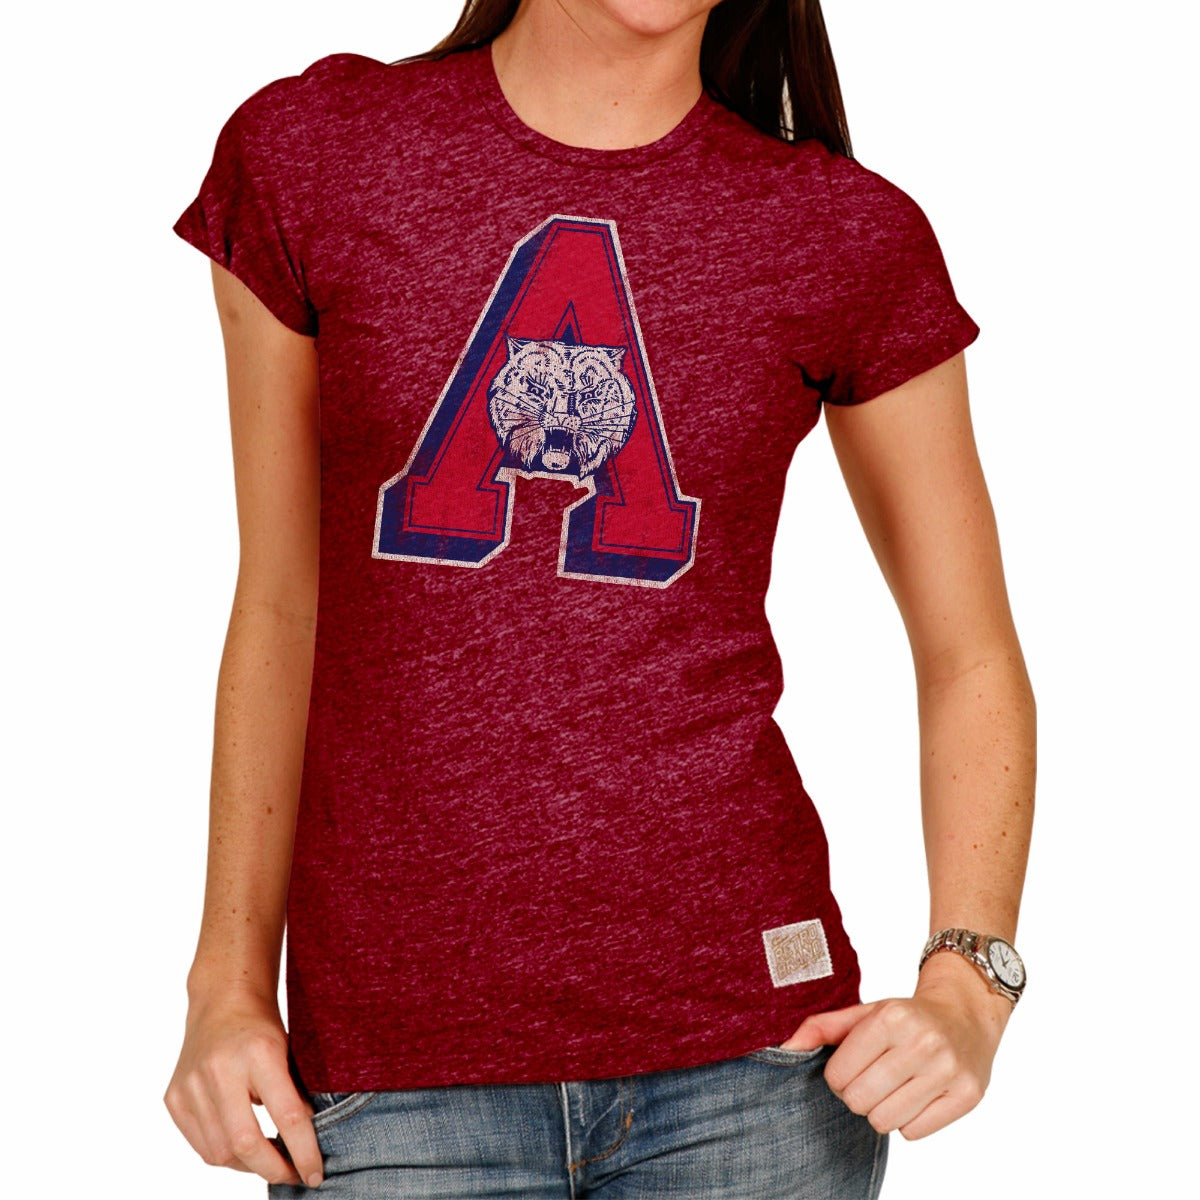 Arizona Wildcats Women's Short Sleeve Vintage Tee